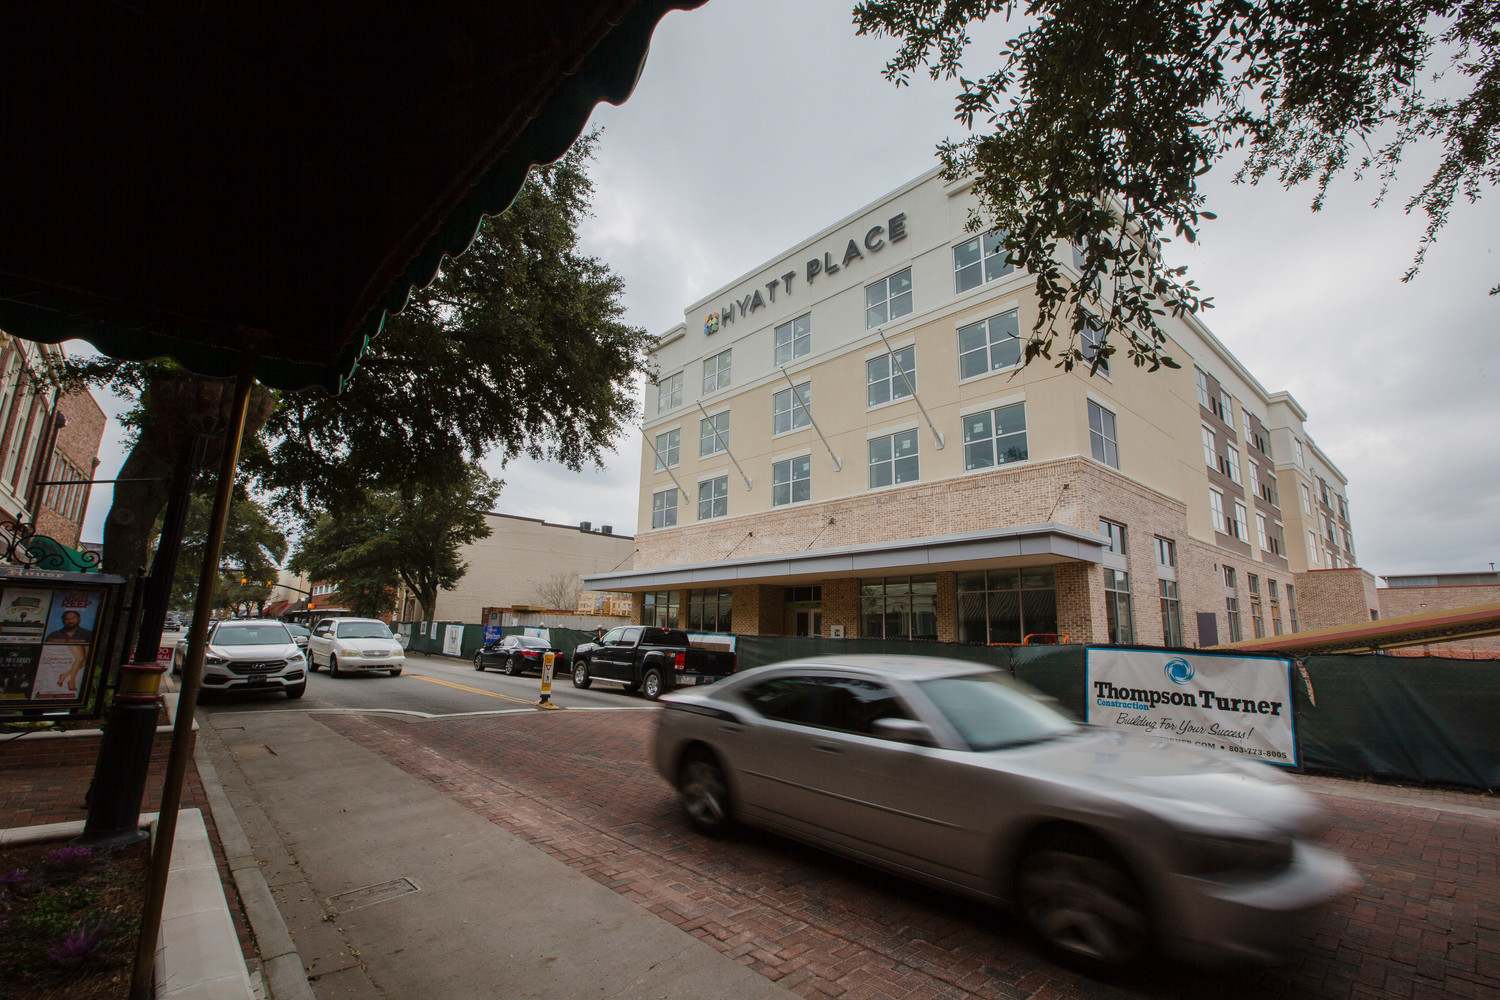 The new Hyatt Place Hotel in downtown Sumter is now taking reservations for as early as July 9.